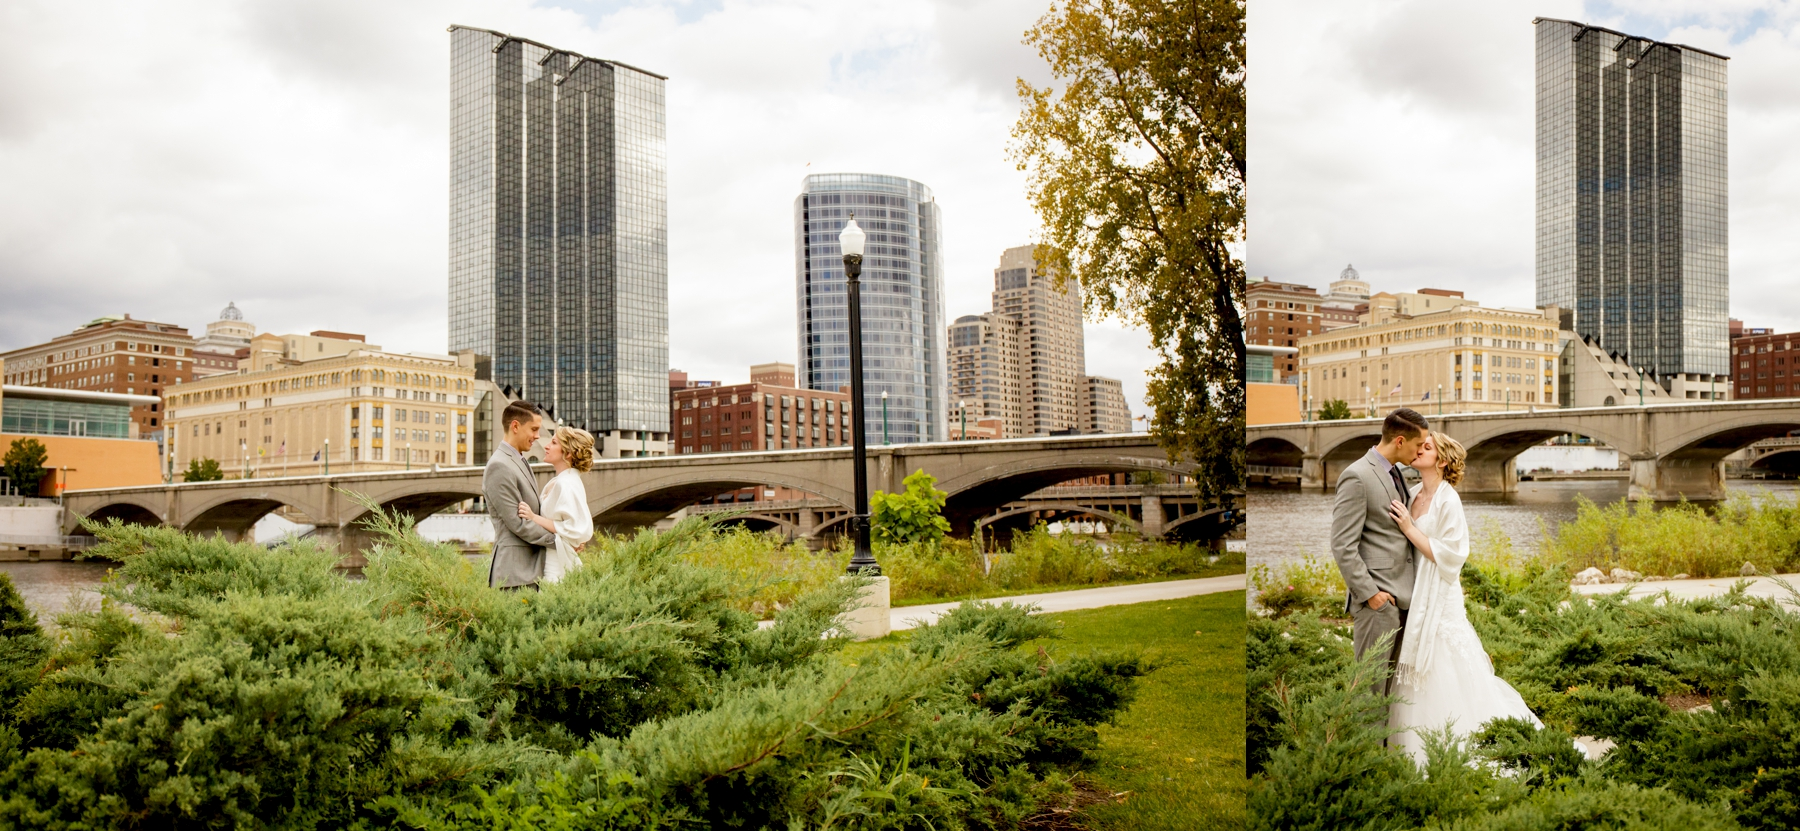 Brandon_Shafer_Photography_Kristen_Corey_Downtown_Grand_Rapids_Fall_Wedding0023.JPG